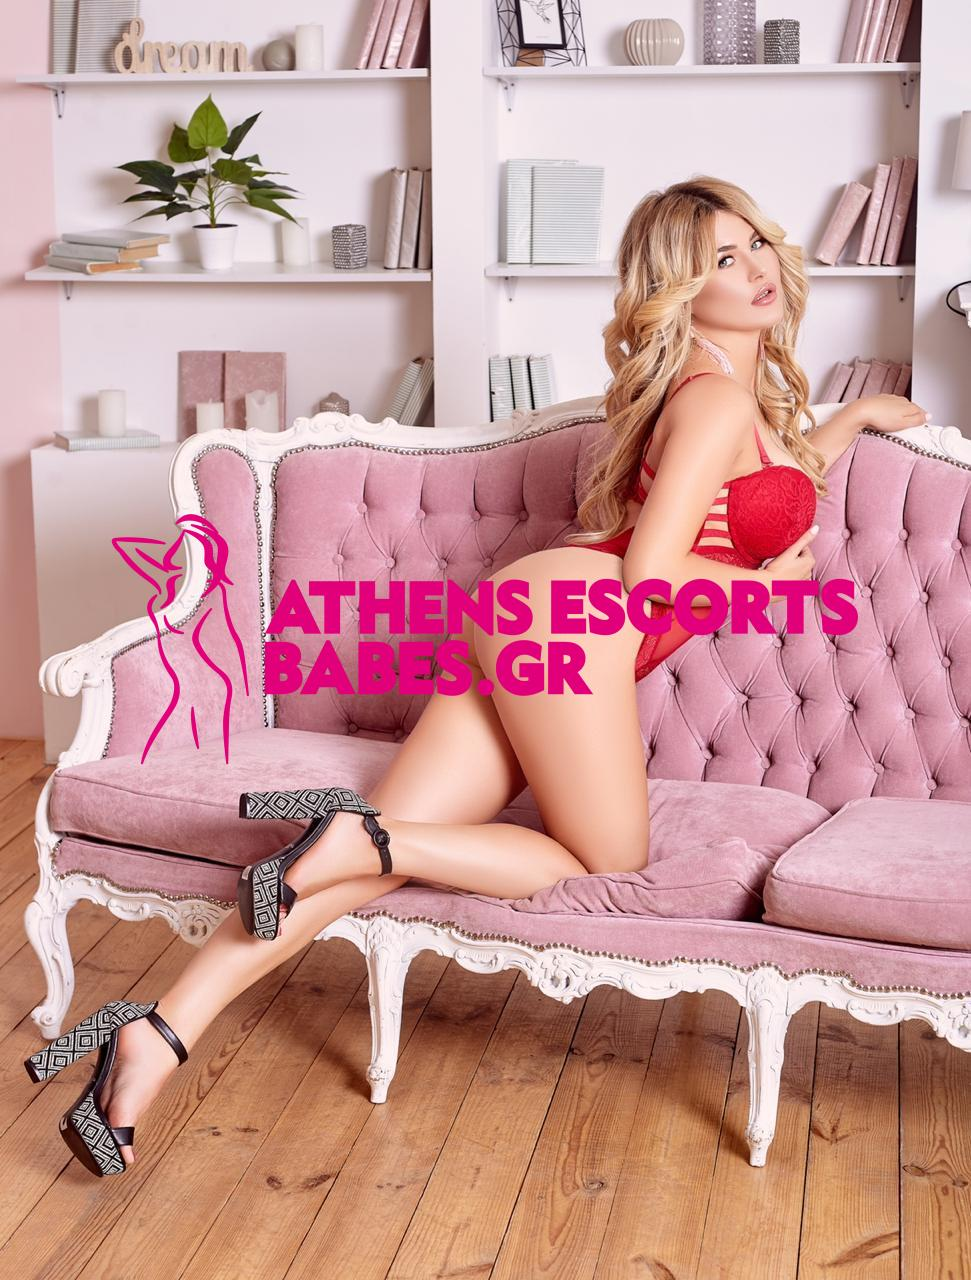 TOP ATHENS ESCORTS MODELS ALISA